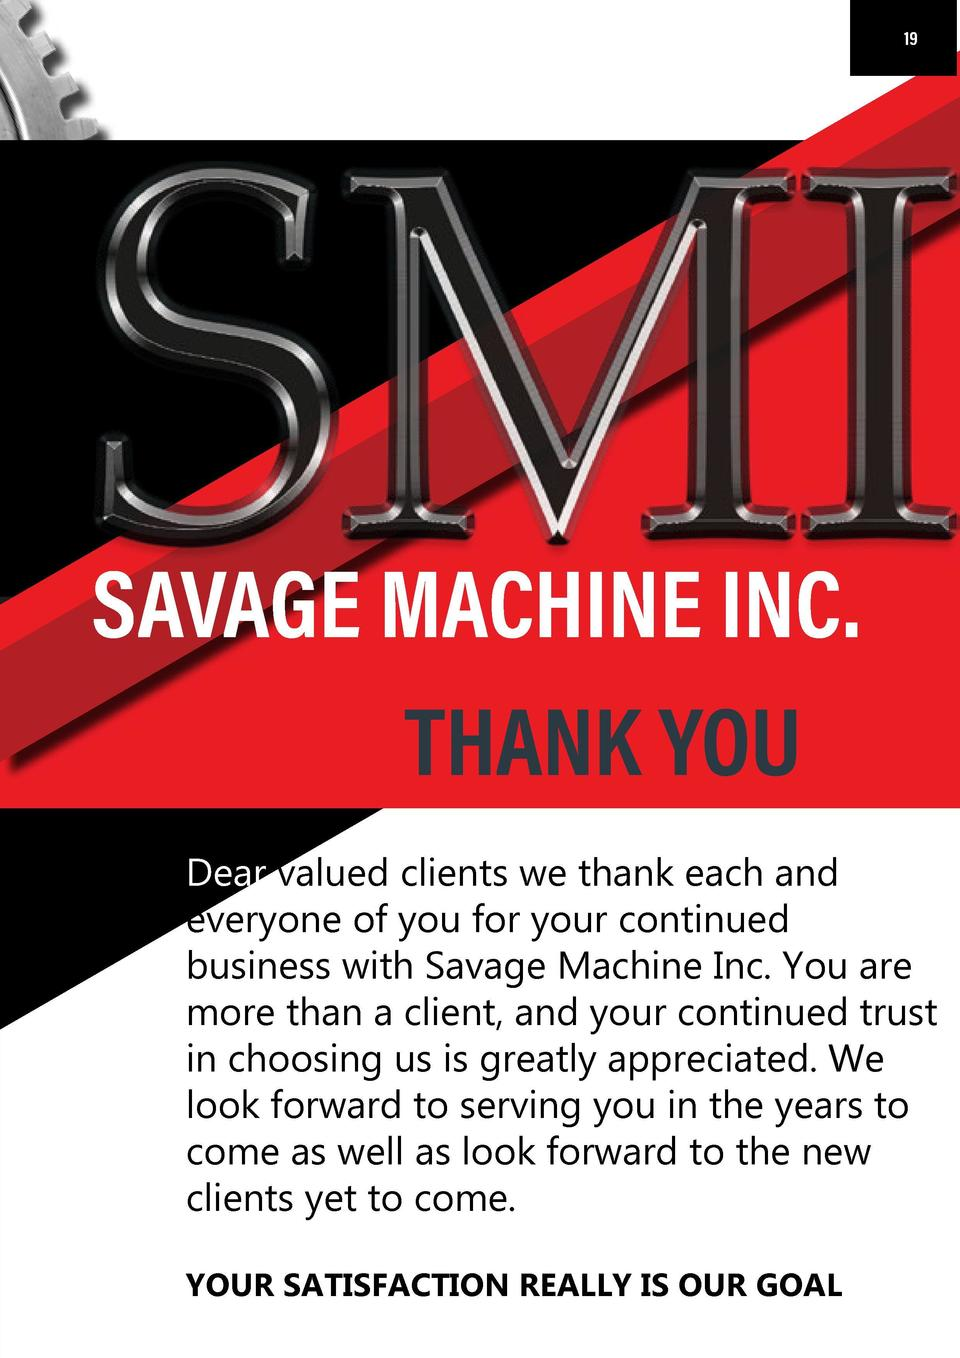 18 18  19  19  SAVAGE MACHINE INC. THANK YOU Dear valued clients we thank each and everyone of you for your continued busi...